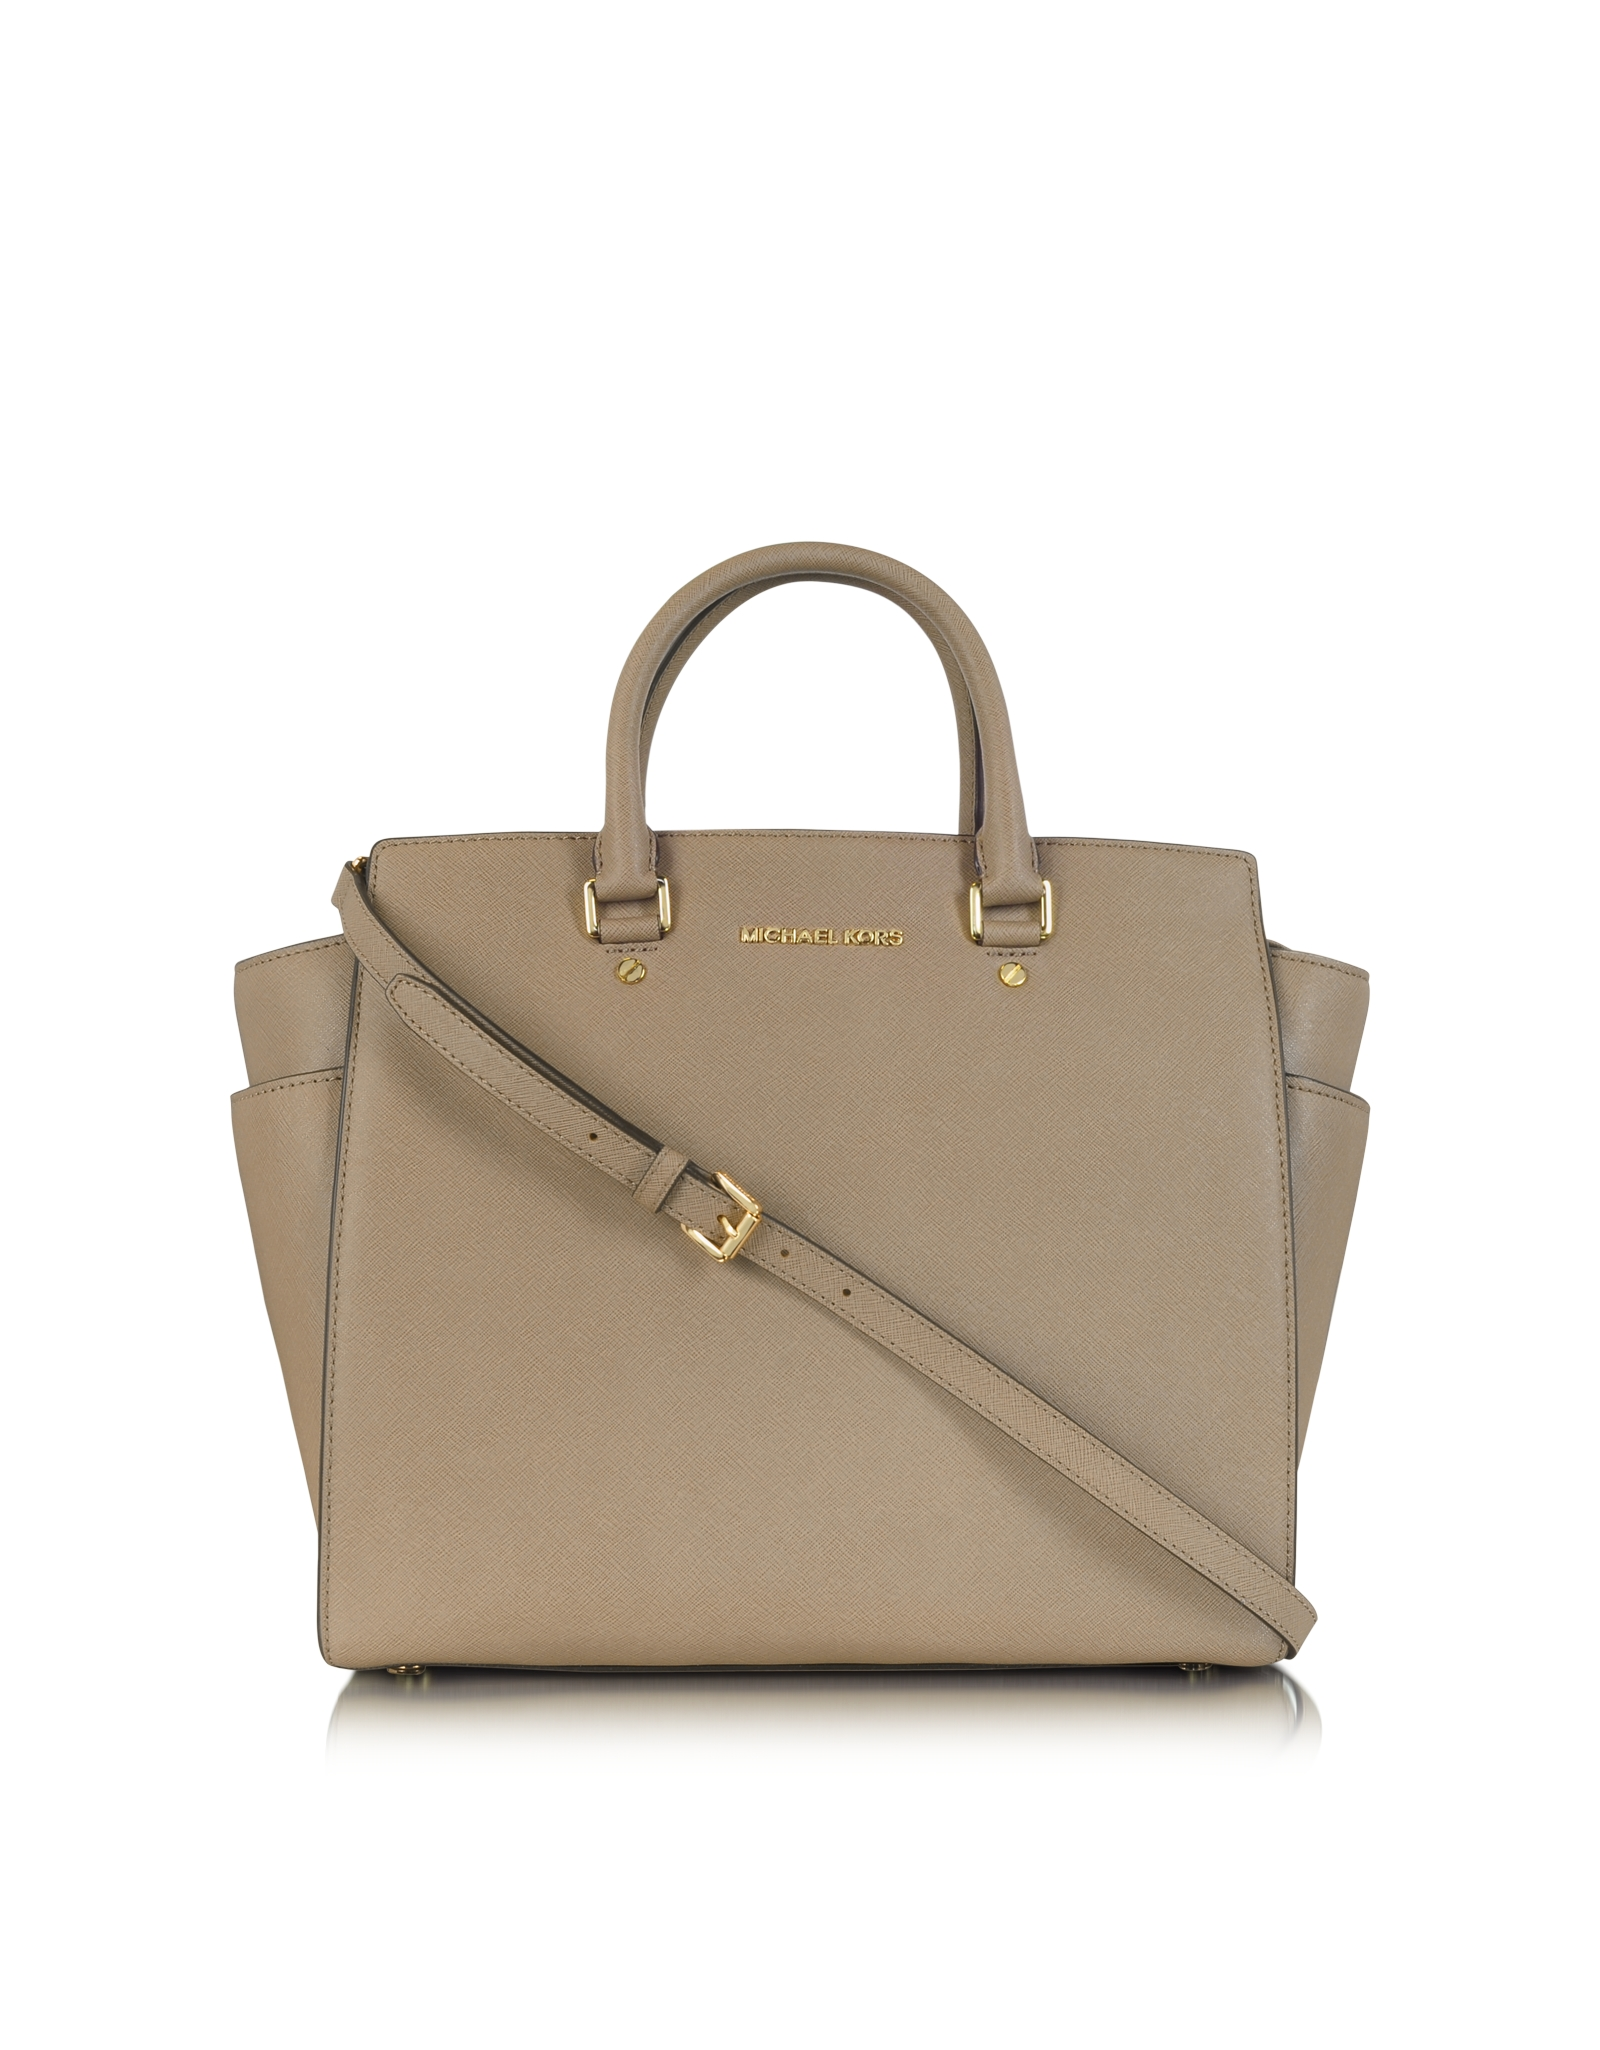 michael kors large selma saffiano leather satchel in beige taupe. Black Bedroom Furniture Sets. Home Design Ideas